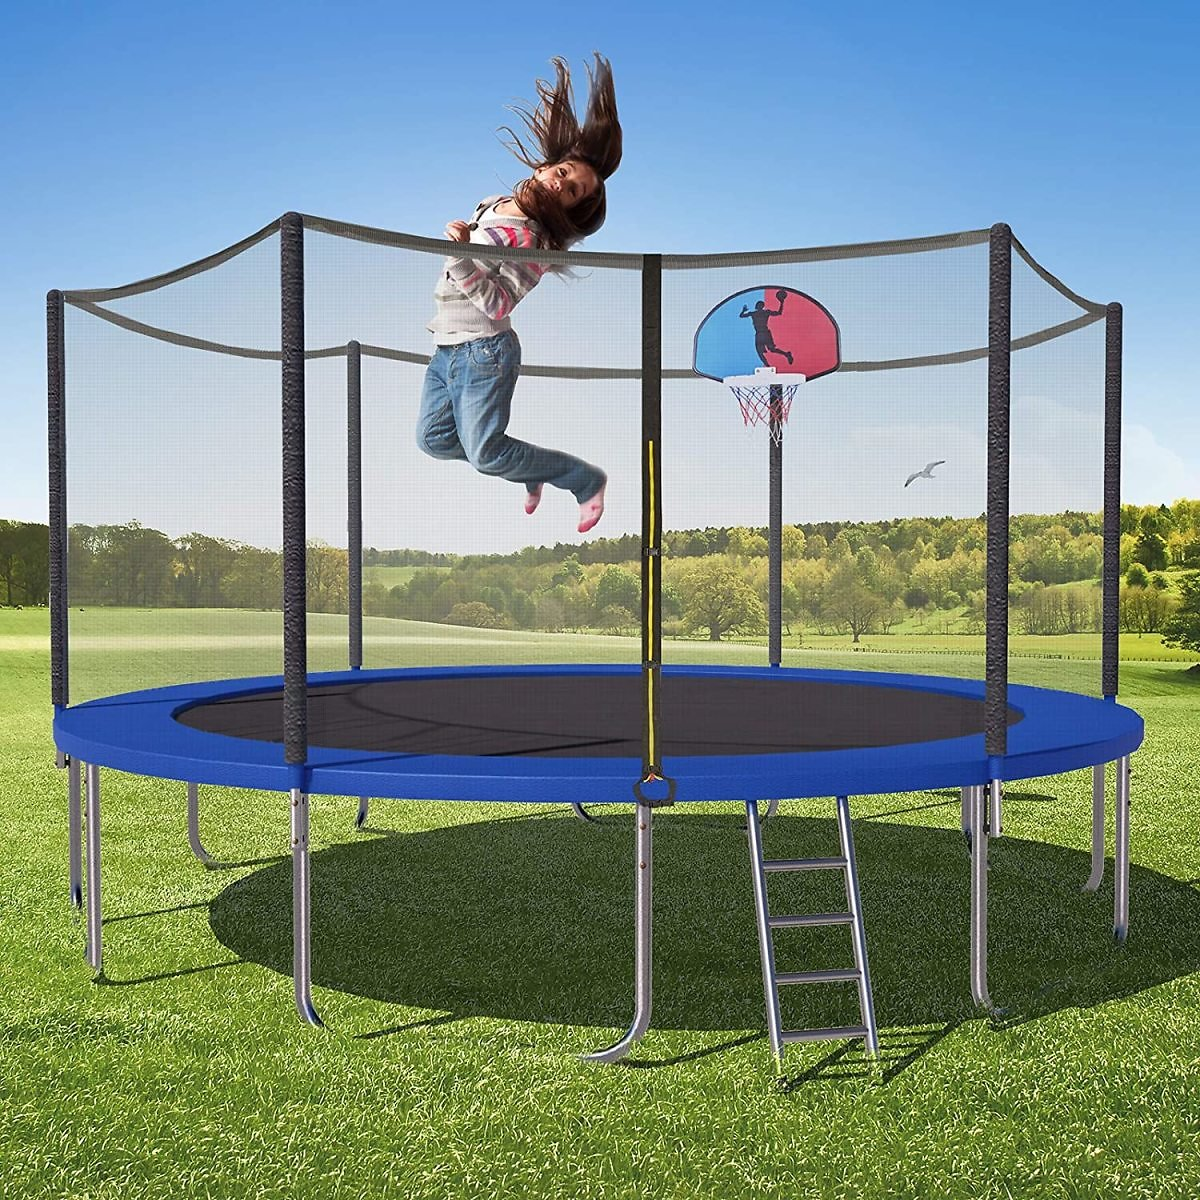 Save 50% On 15FT Trampoline Round Jumping-Bed with Safety Enclosure Net + Free Shipping